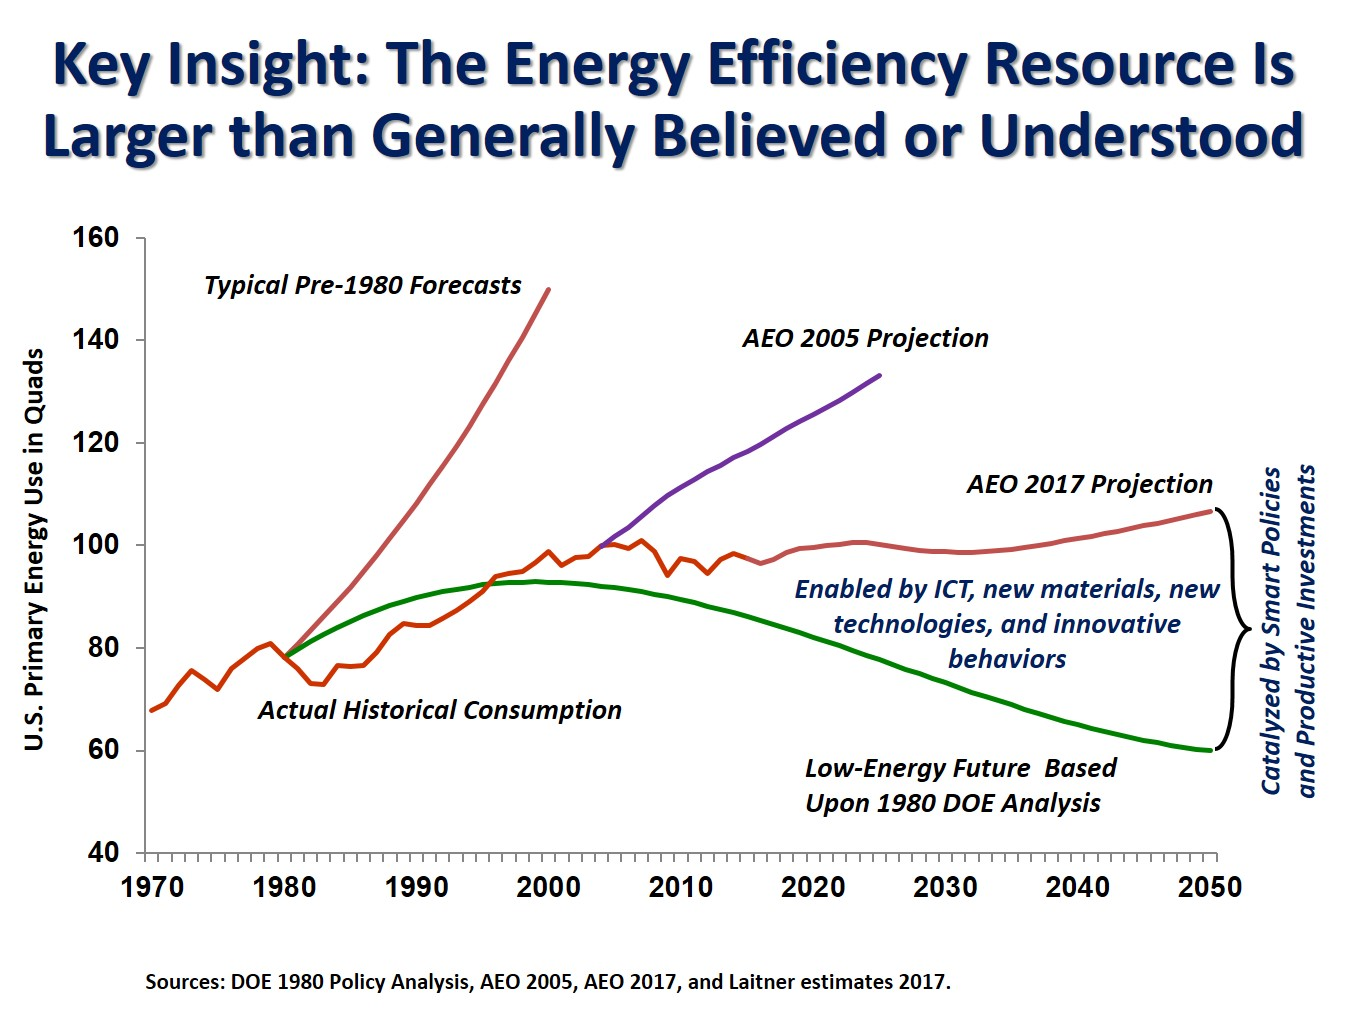 Key insight: Energy Efficiency Resource is Larger than Generally Believed our Understood